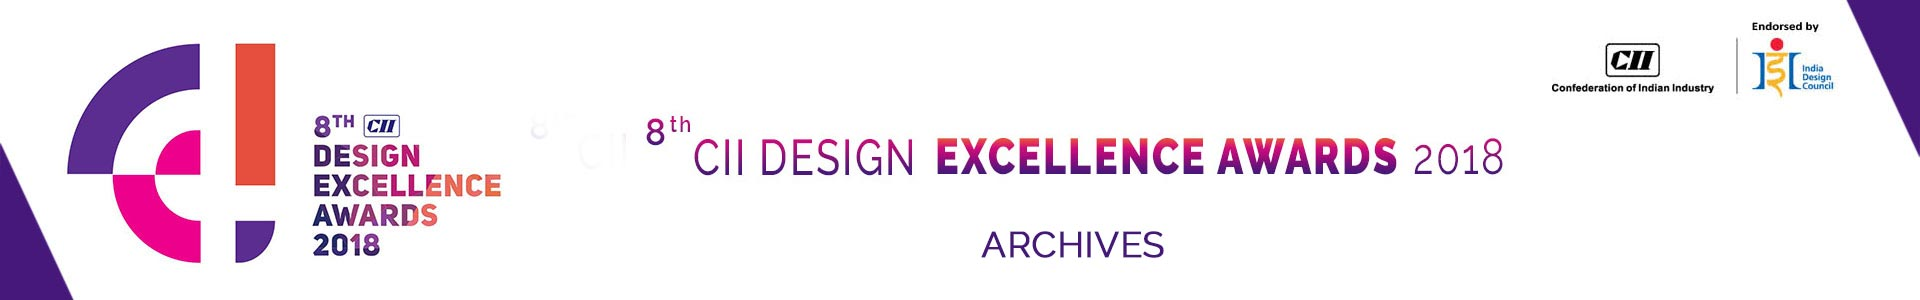 18th-cii-design-excellence-awards